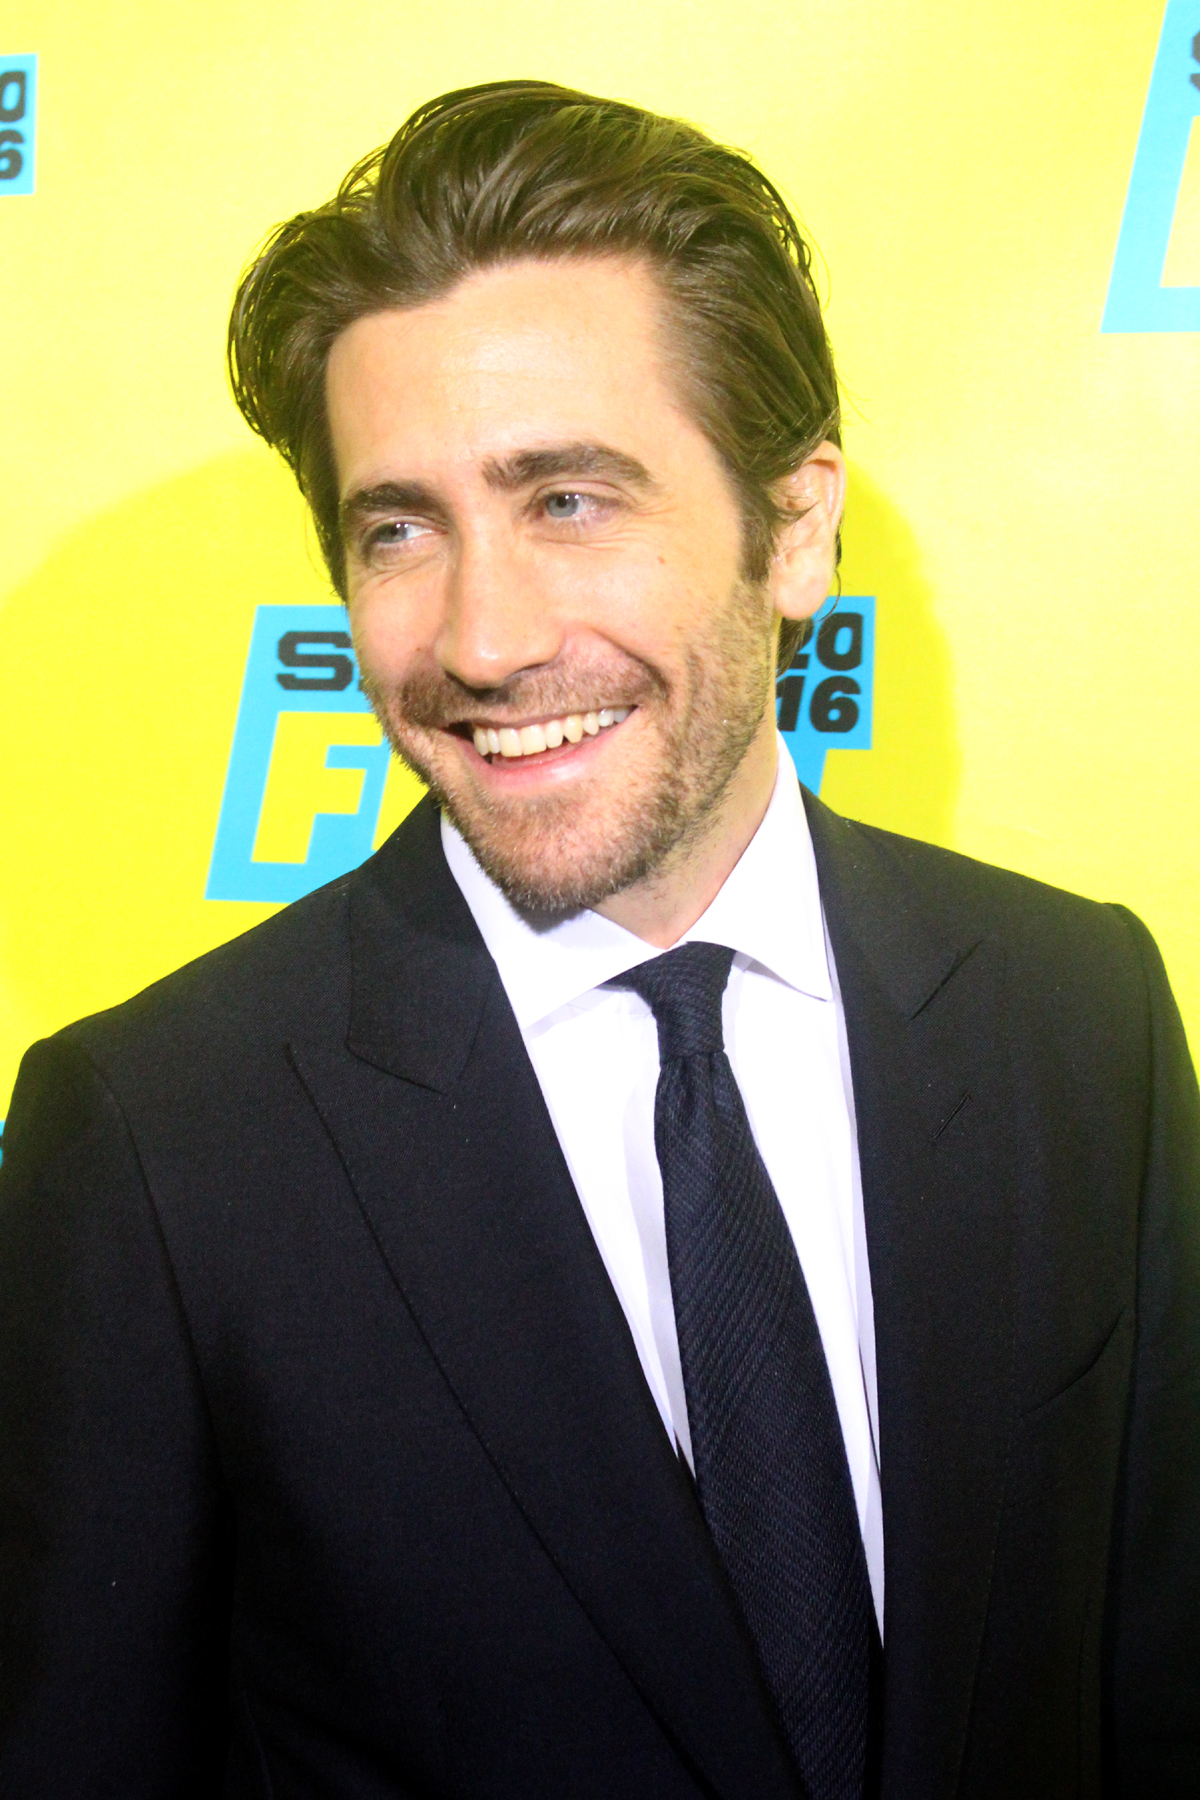 Jake Gyllenhaal // Photo by Heather Kaplan